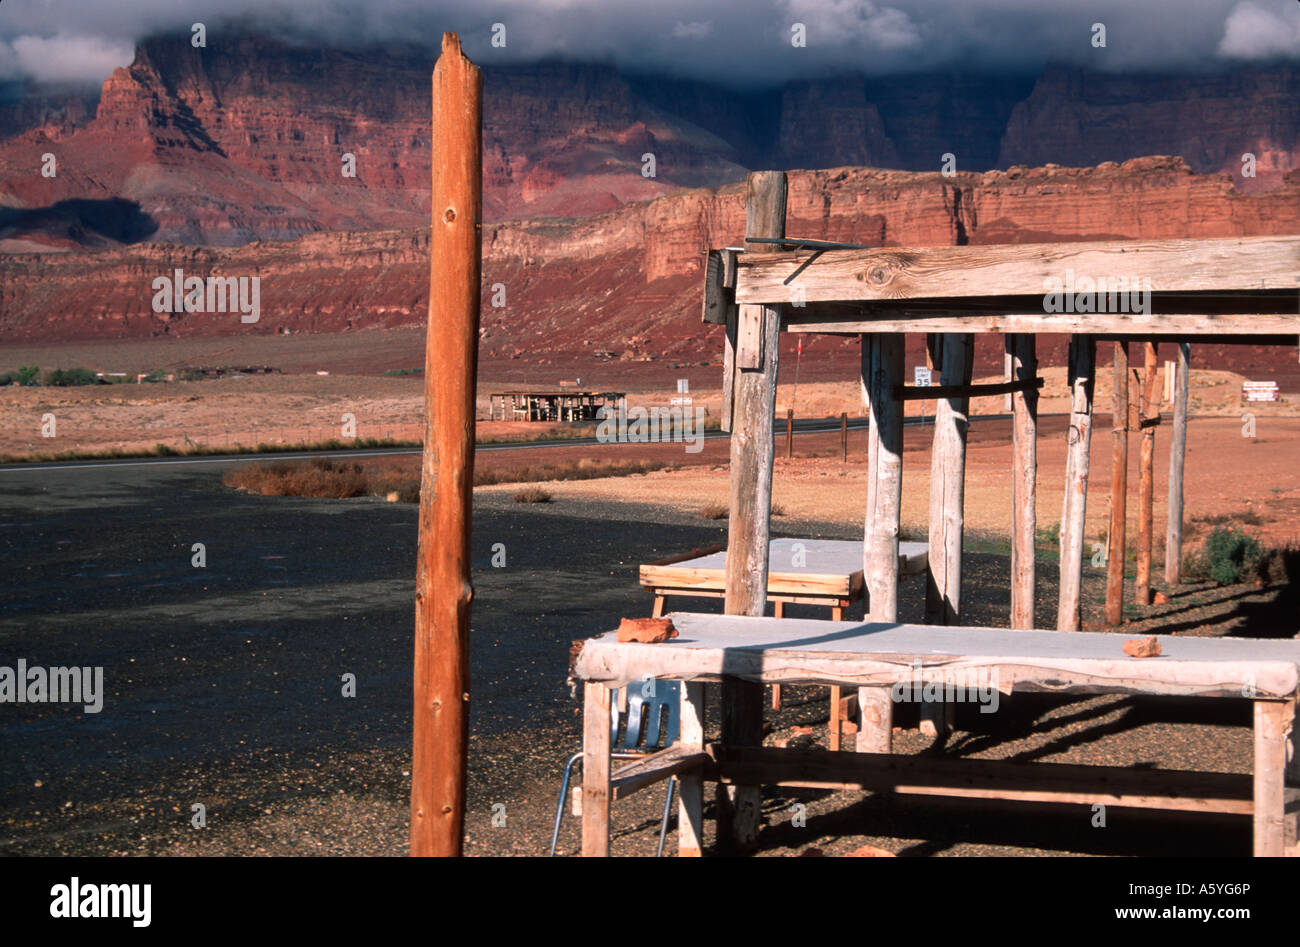 Painet iv1753 navajo roadside arts crafts stand marble canyon indian reservation az - Stock Image